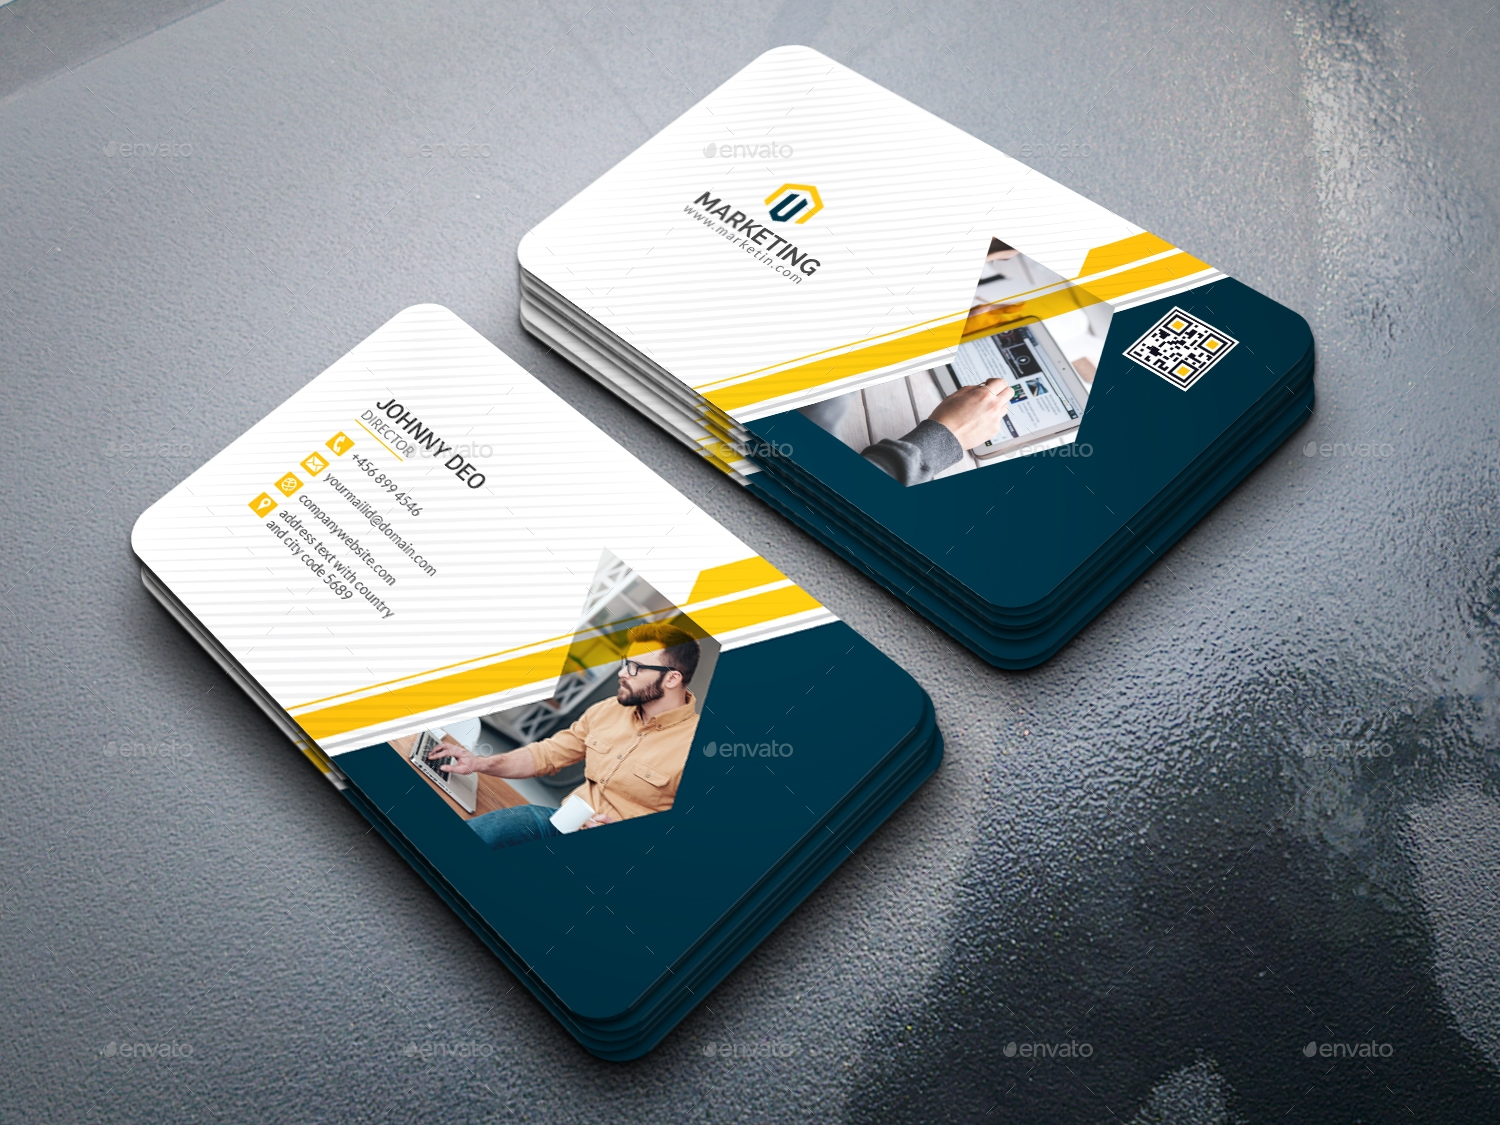 10+ Modern Business Card Designs and Examples - PSD, AI